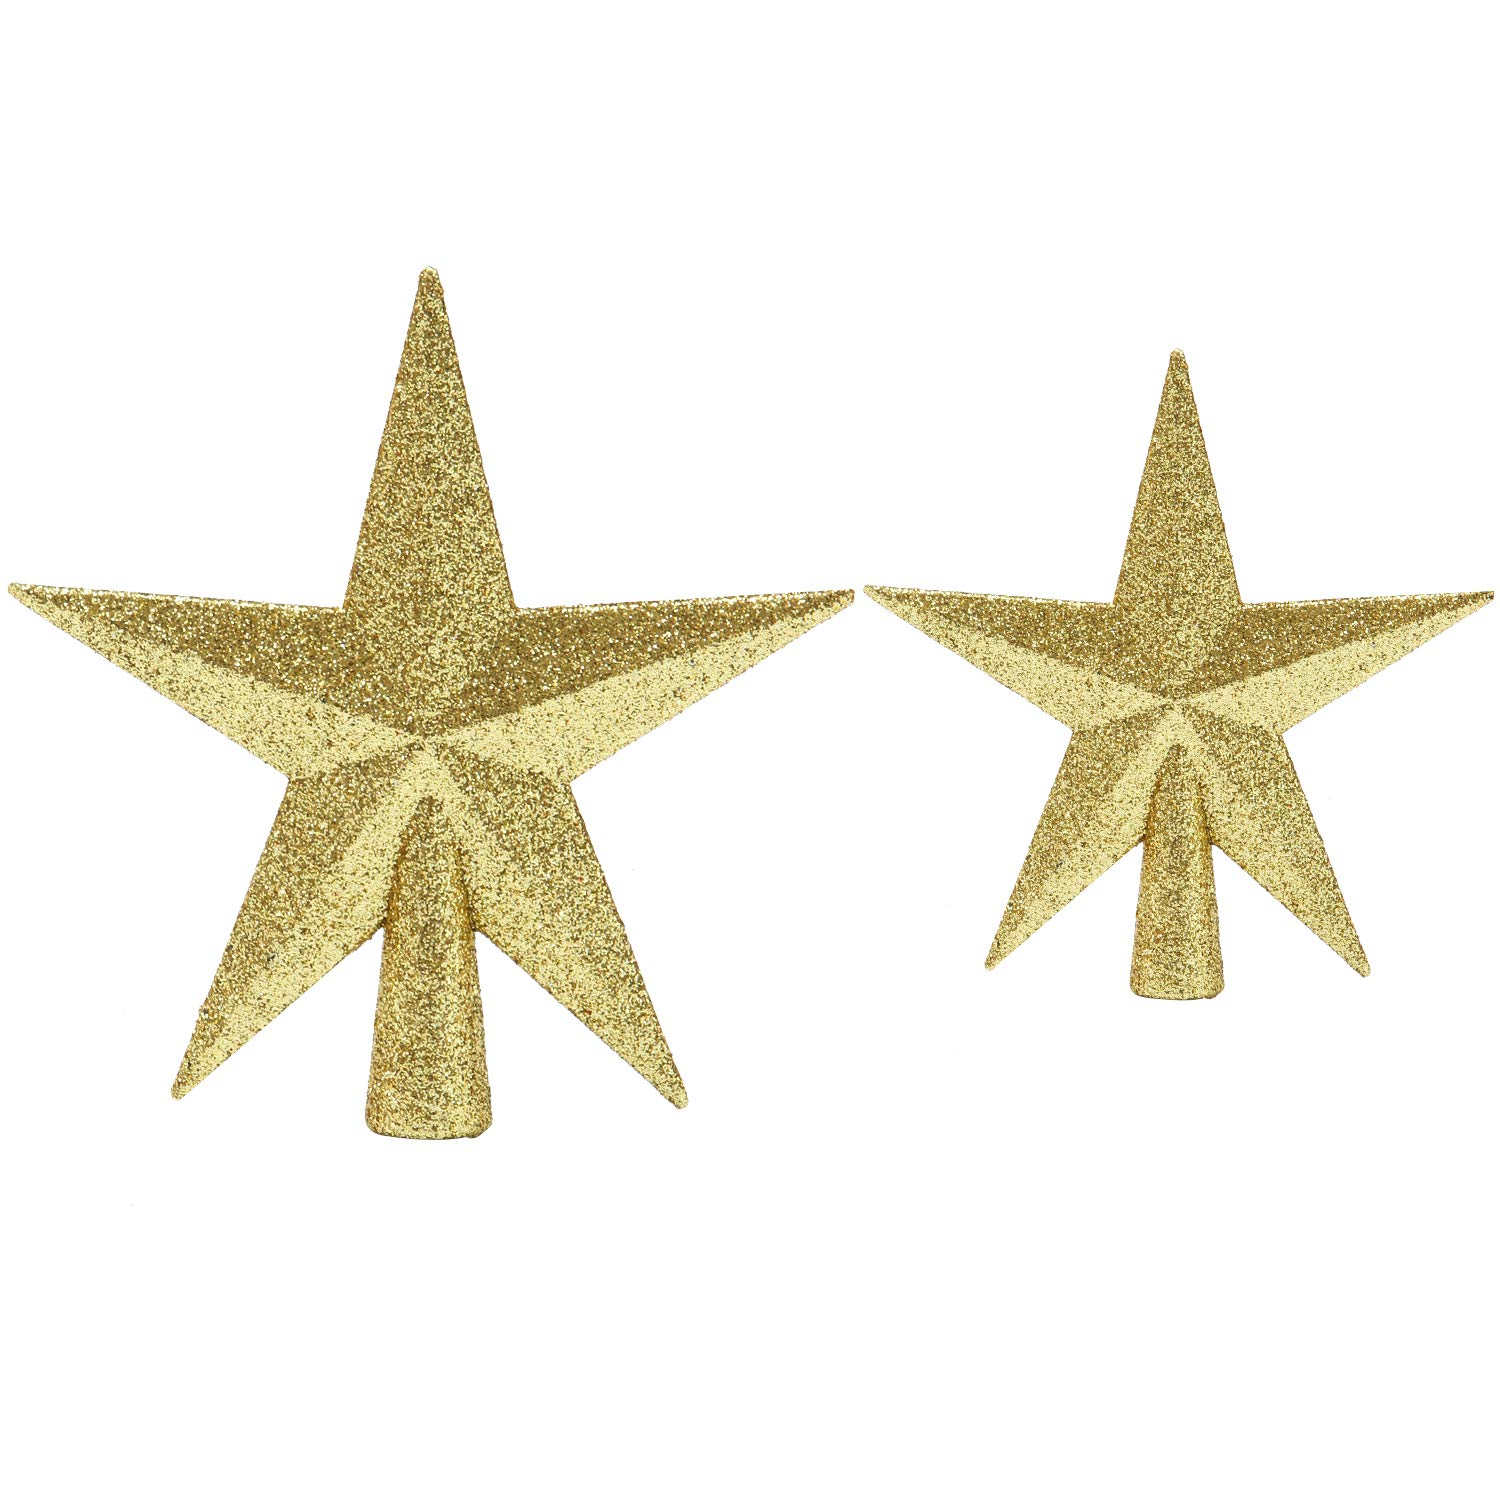 Aneco 2 Pack Glittered Christmas Tree Topper Star Treetop for Christmas Tree Decoration or Home Decor, Hard Plastic, 2 Size